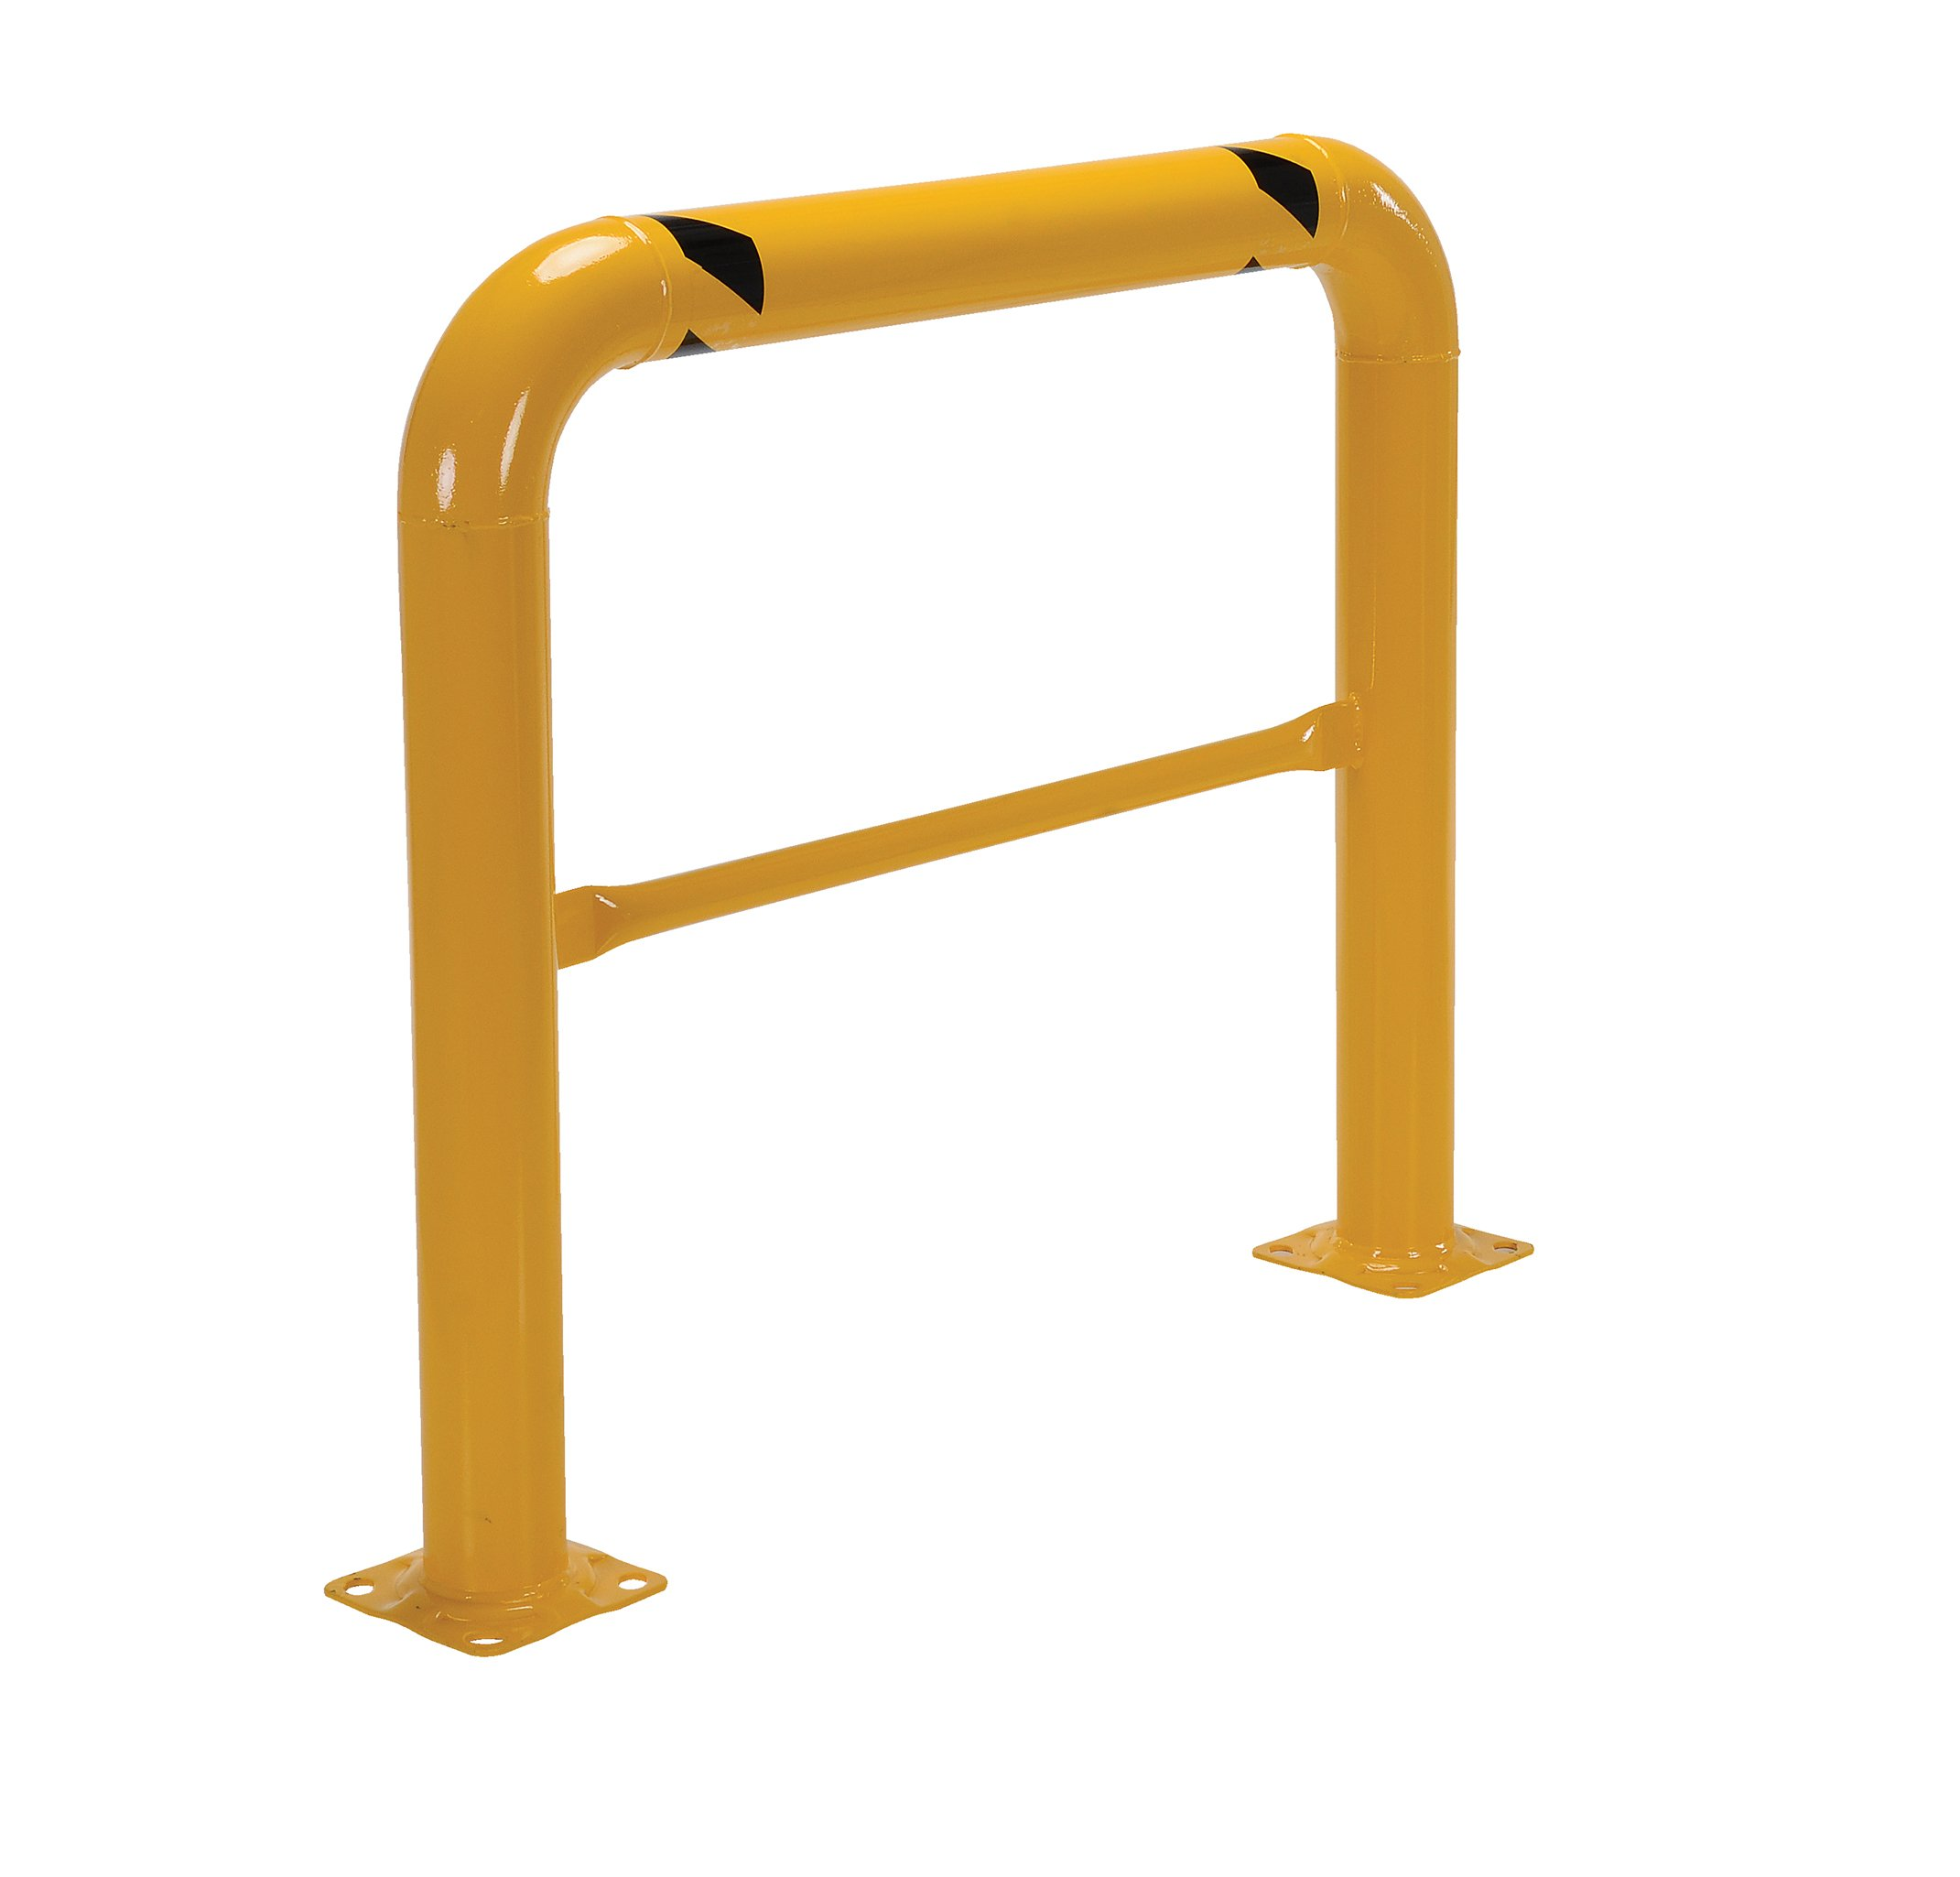 Vestil HPRO-48-42-4 Yellow Powder Coat High Profile Machinery Guard, Welded Steel, 4-1/2'' OD, 48'' Length, 42'' Height